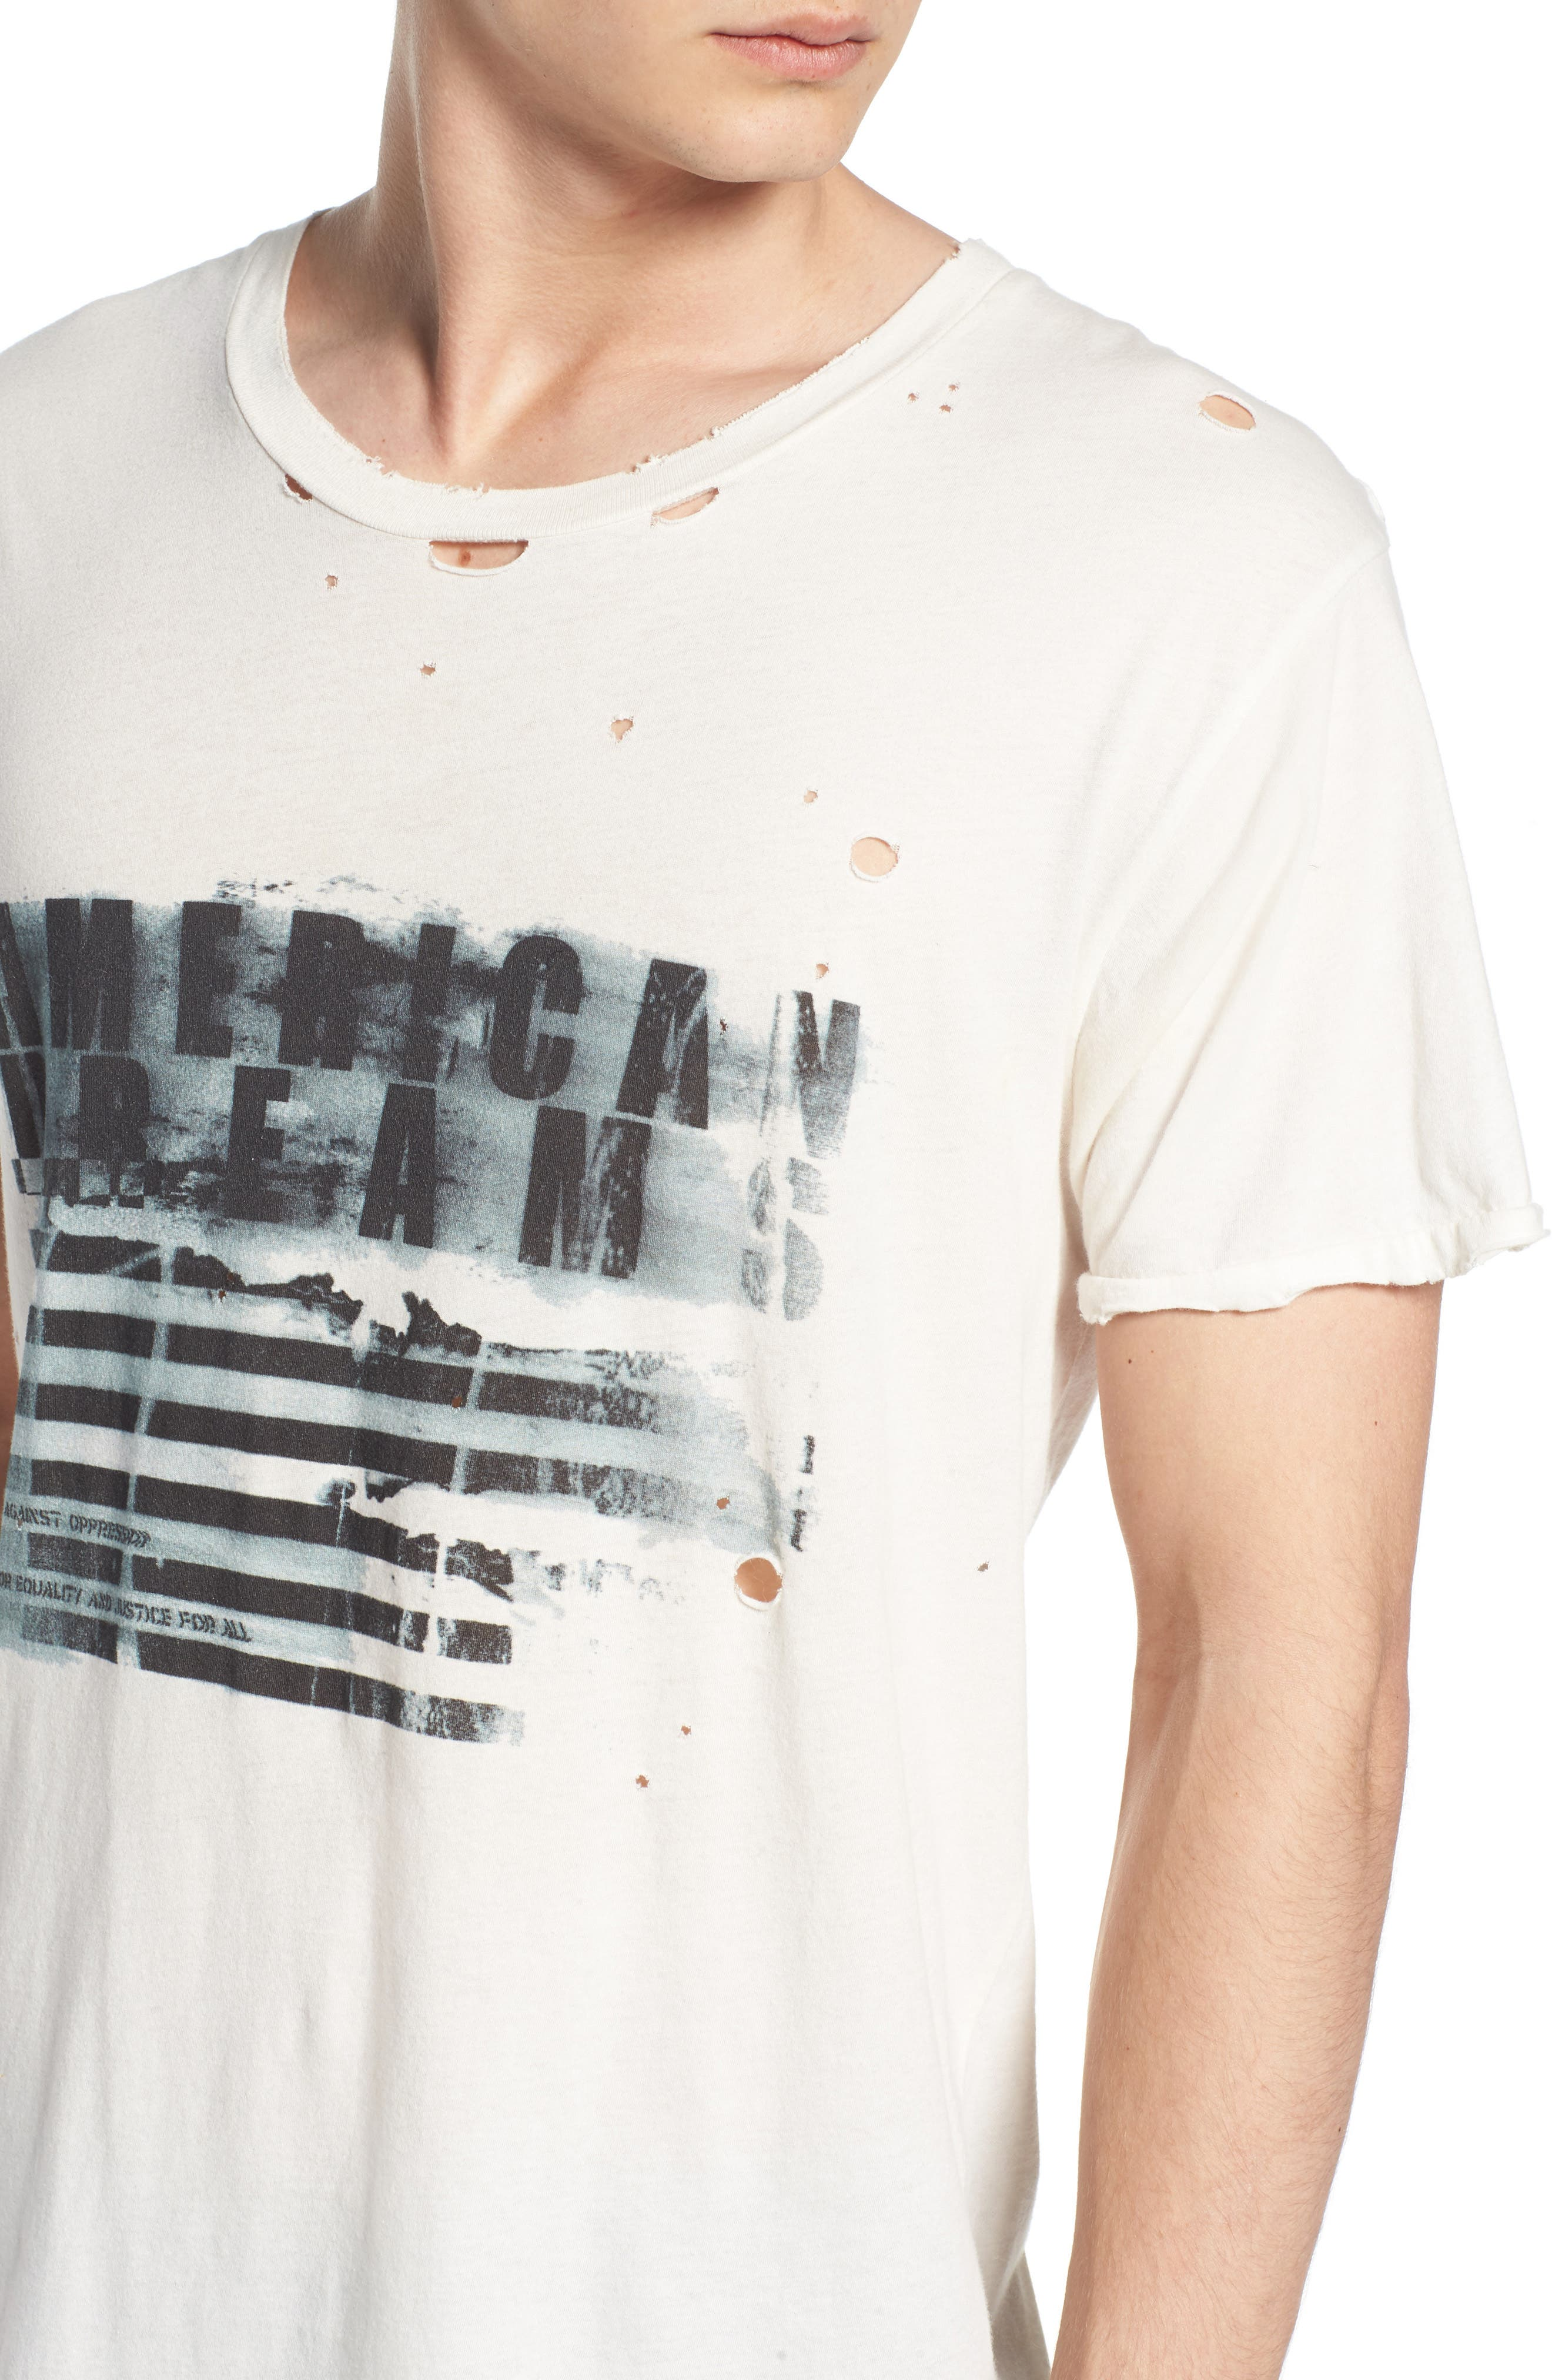 American Dreams Distressed Graphic T-Shirt,                             Alternate thumbnail 3, color,                             White